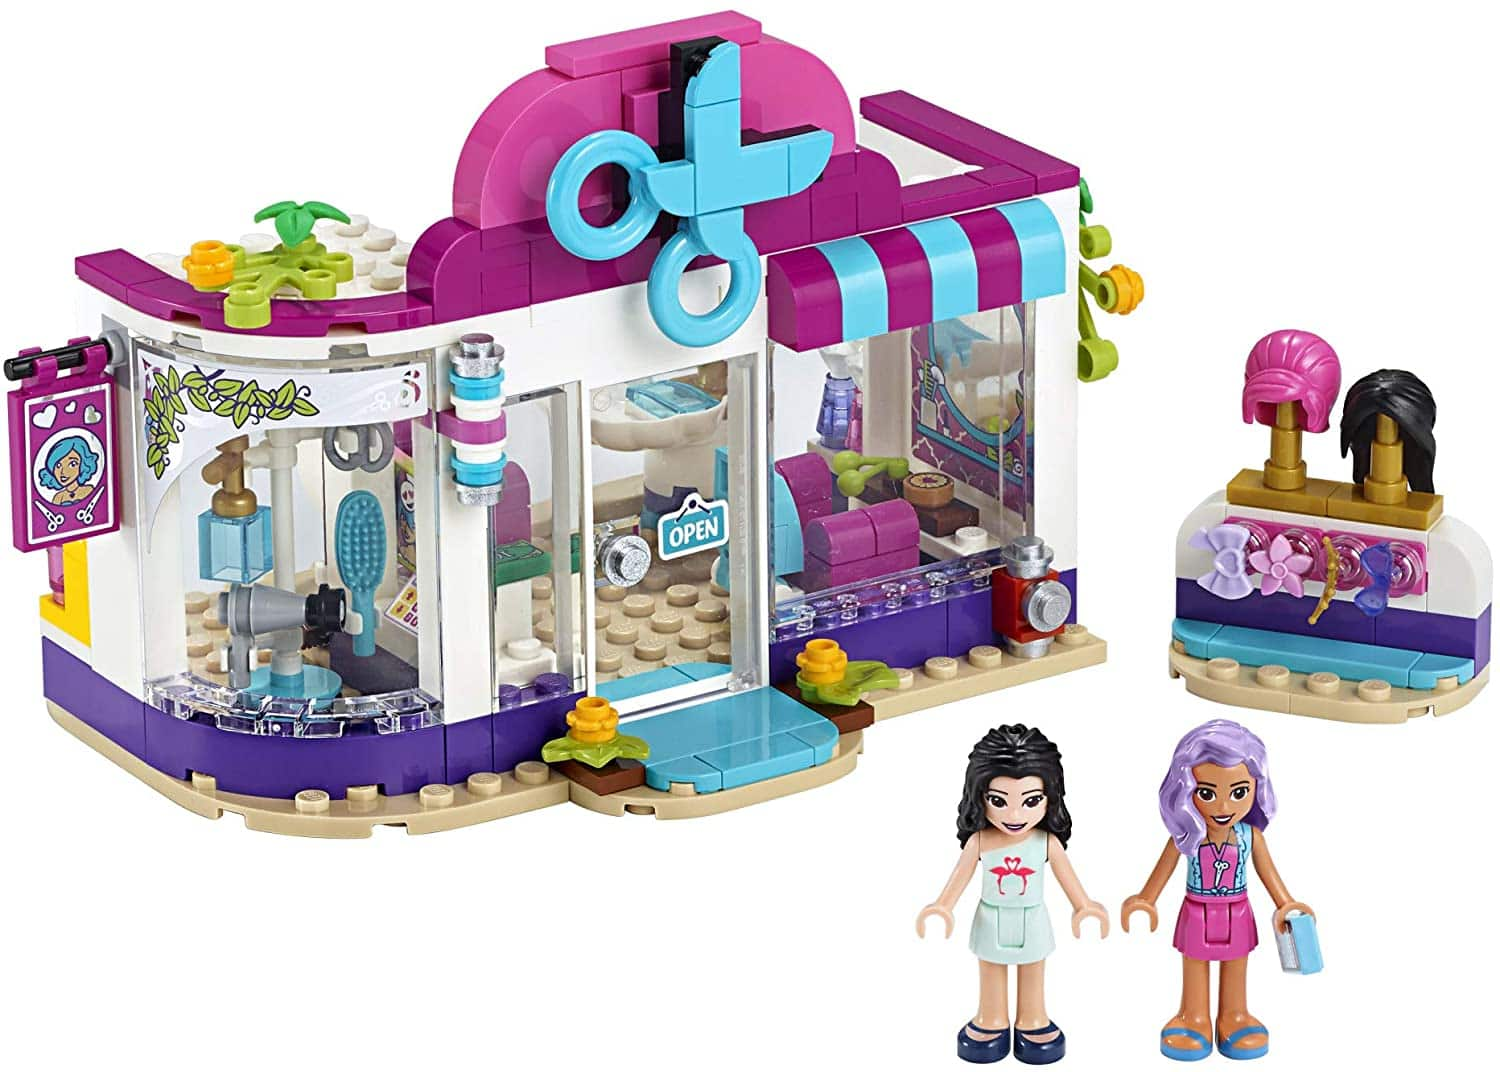 LEGO Friends Heartlake City Play Hair Salon Fun Toy 41391 Building Kit, Featuring LEGO Friends Character Emma, New 2020 (235 Pieces) $15.99